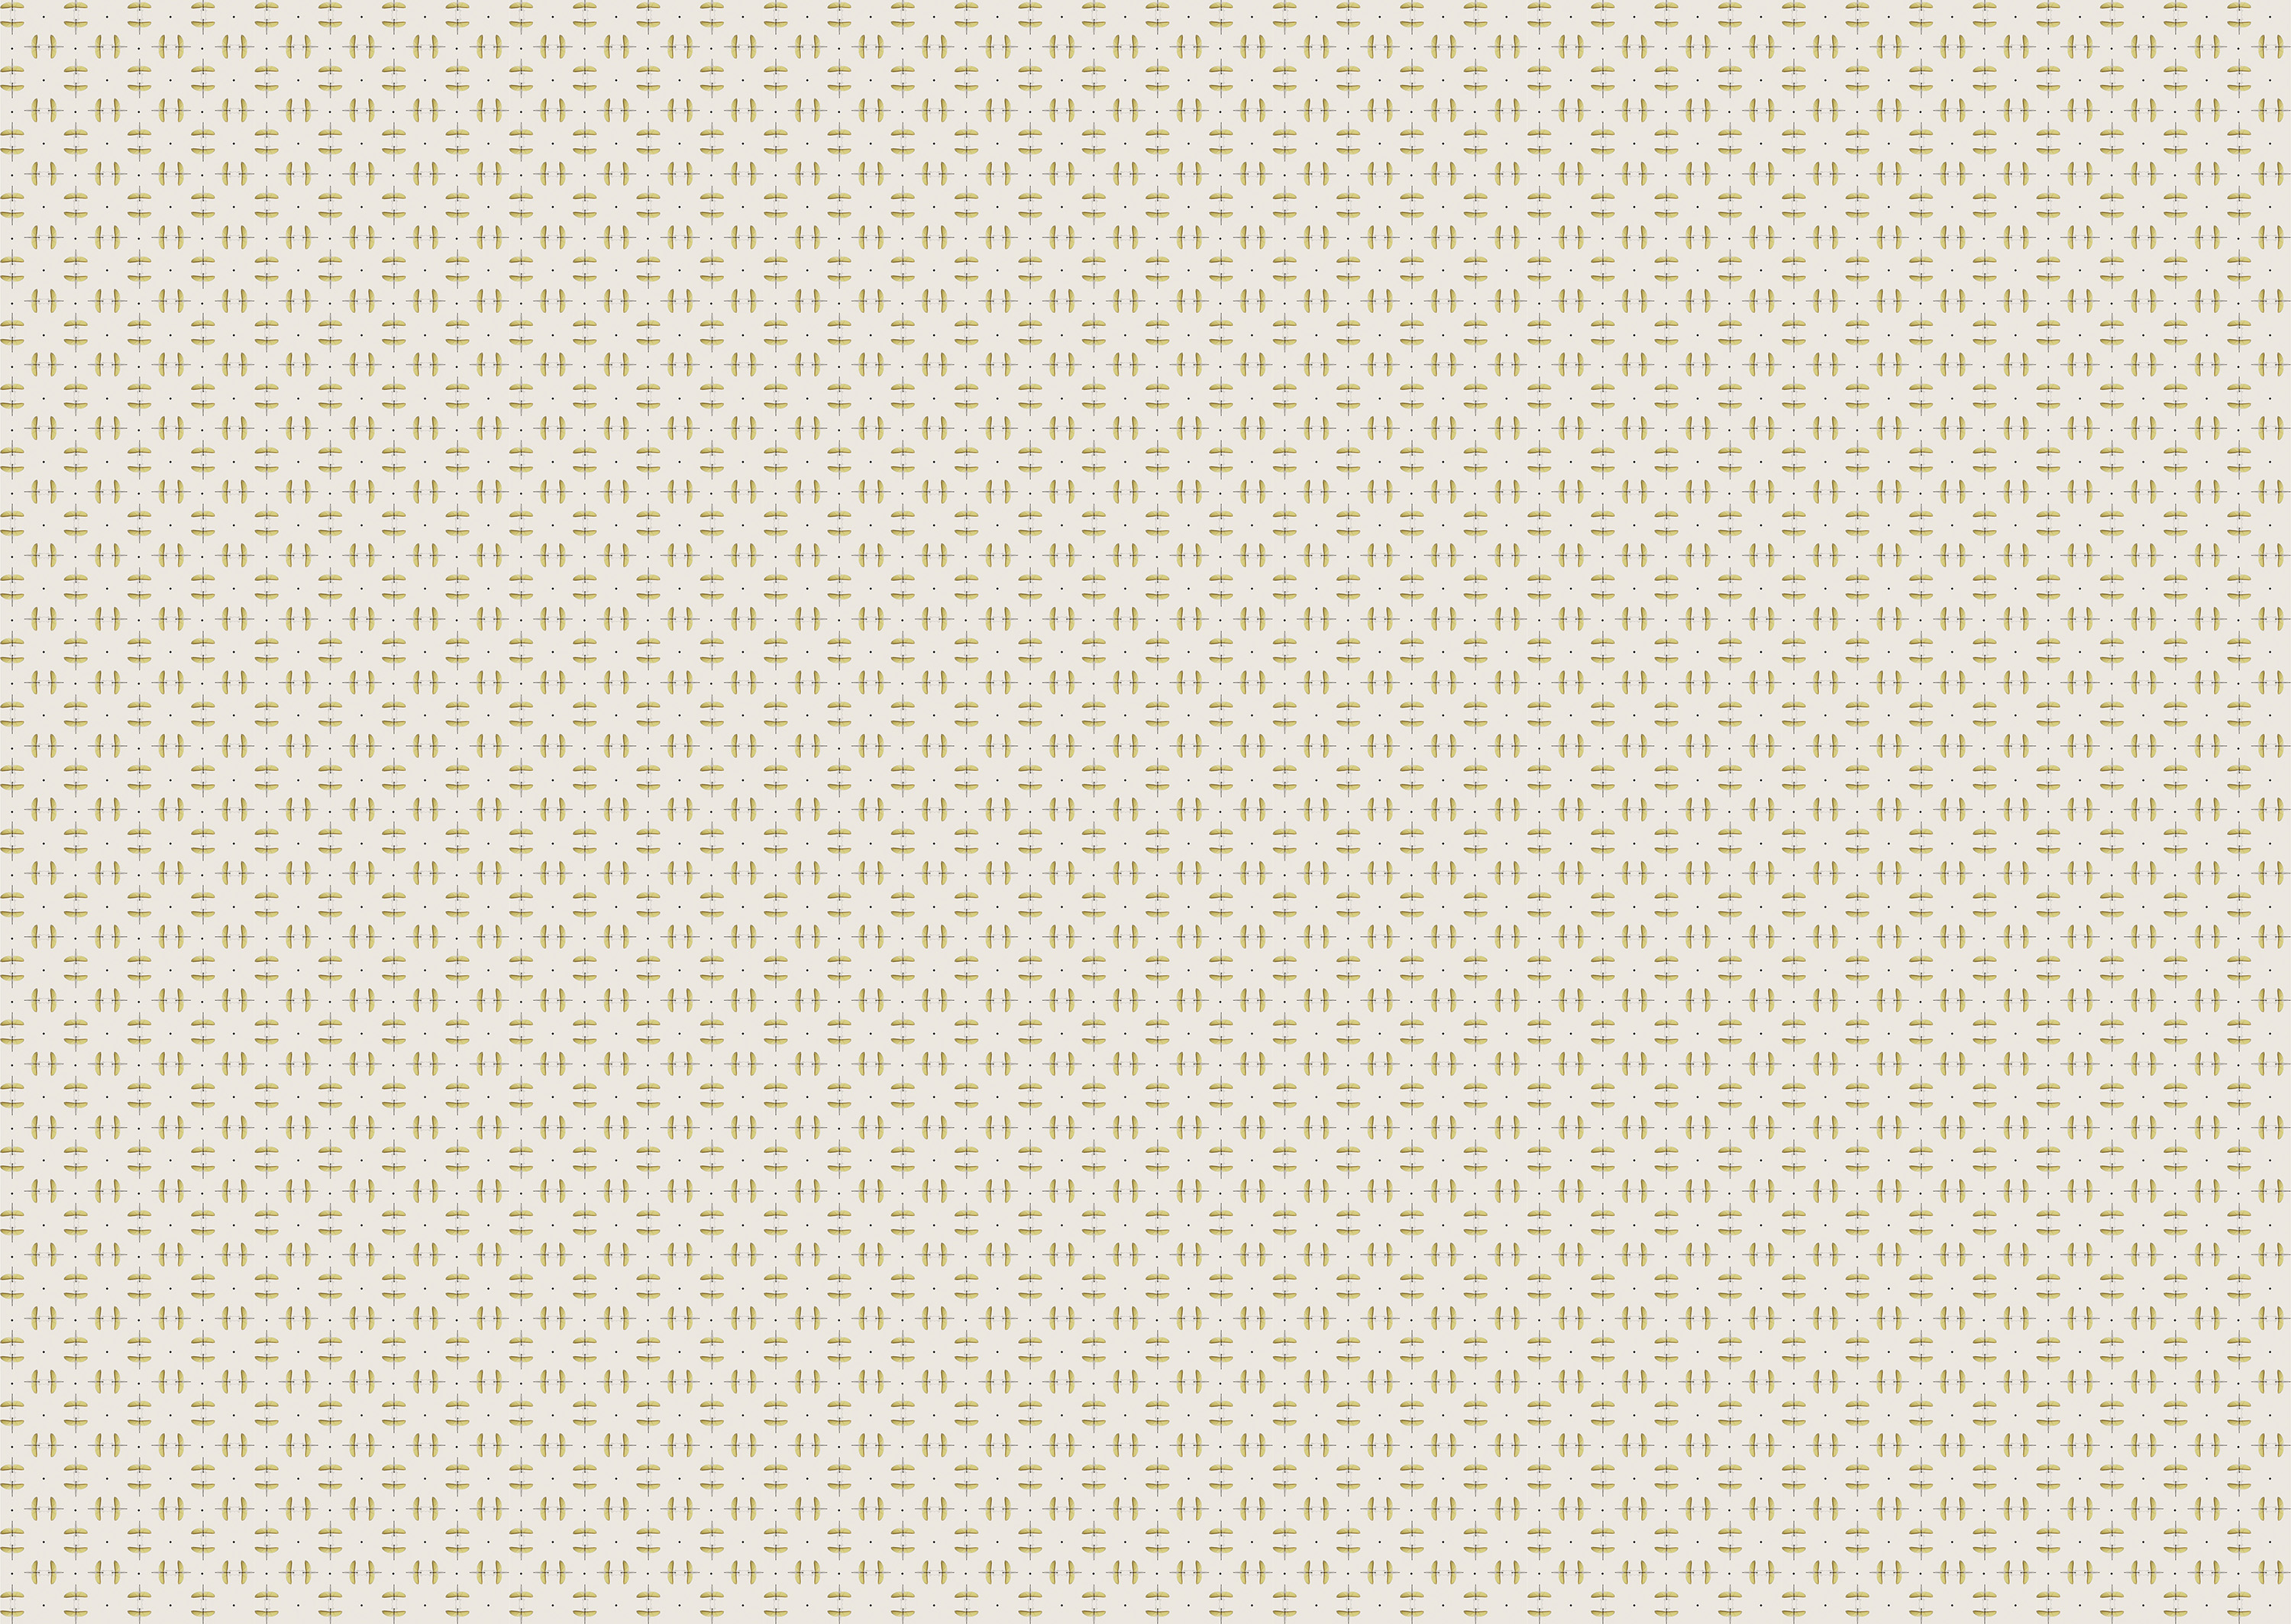 Paraphasmatide Ivory - It is not just wallpaper, but dreams that remodel places, perspectives that give life to spaces. Wallpaper does not cover environments, but interprets them thanks to the fascinations of those who live there. Wallpaper does not cover walls, but offers new perspectives which seduce your imagination.